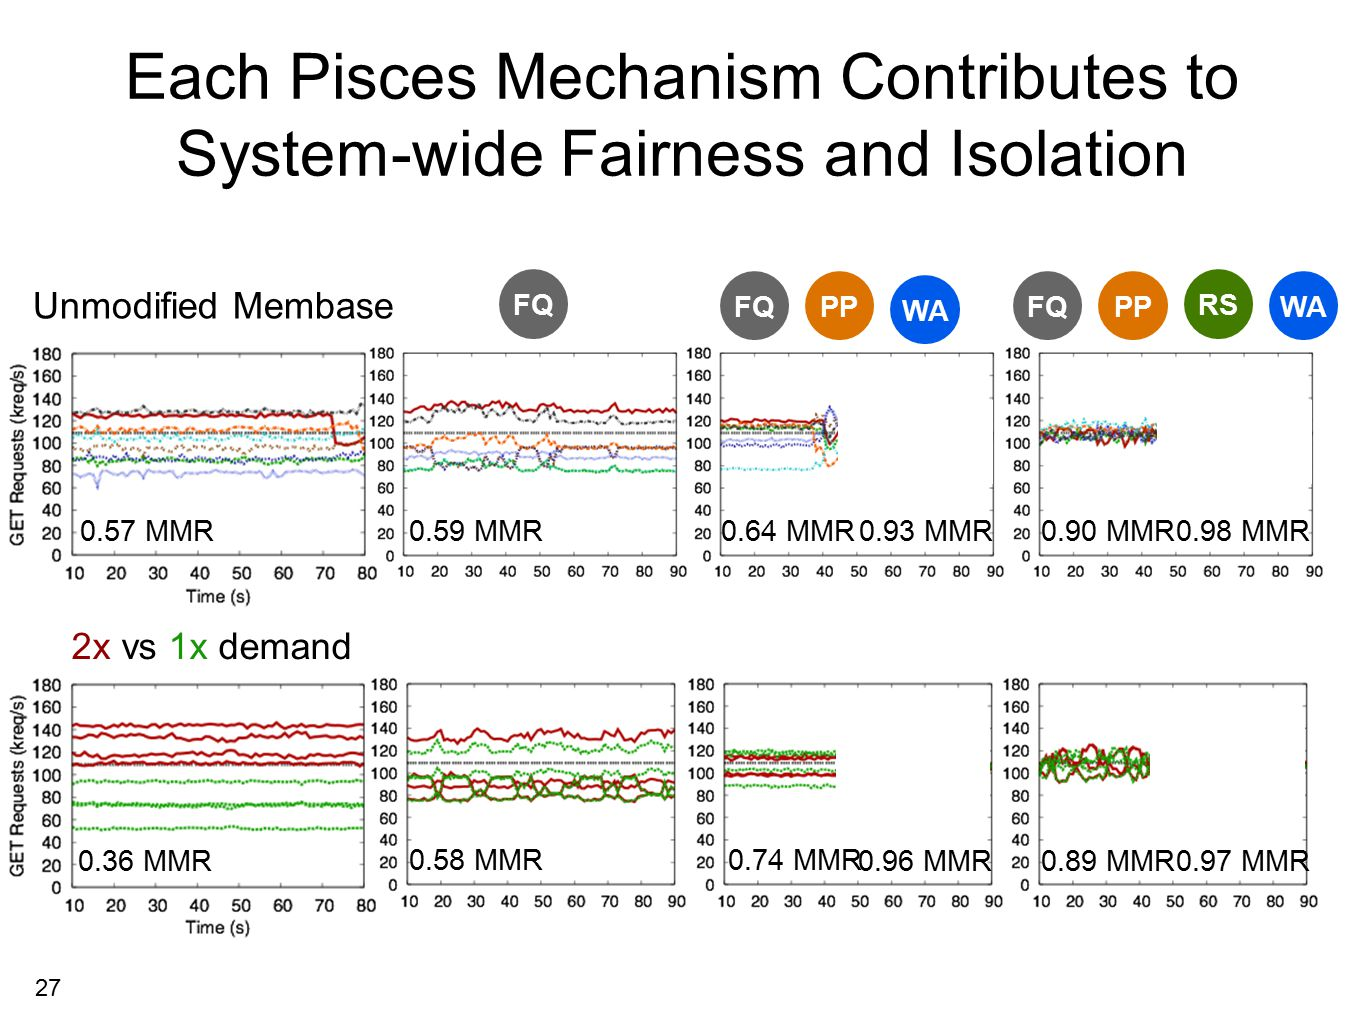 27 Each Pisces Mechanism Contributes to System-wide Fairness and Isolation Unmodified Membase 0.59 MMR0.93 MMR0.98 MMR 0.36 MMR 0.58 MMR0.74 MMR RS WA